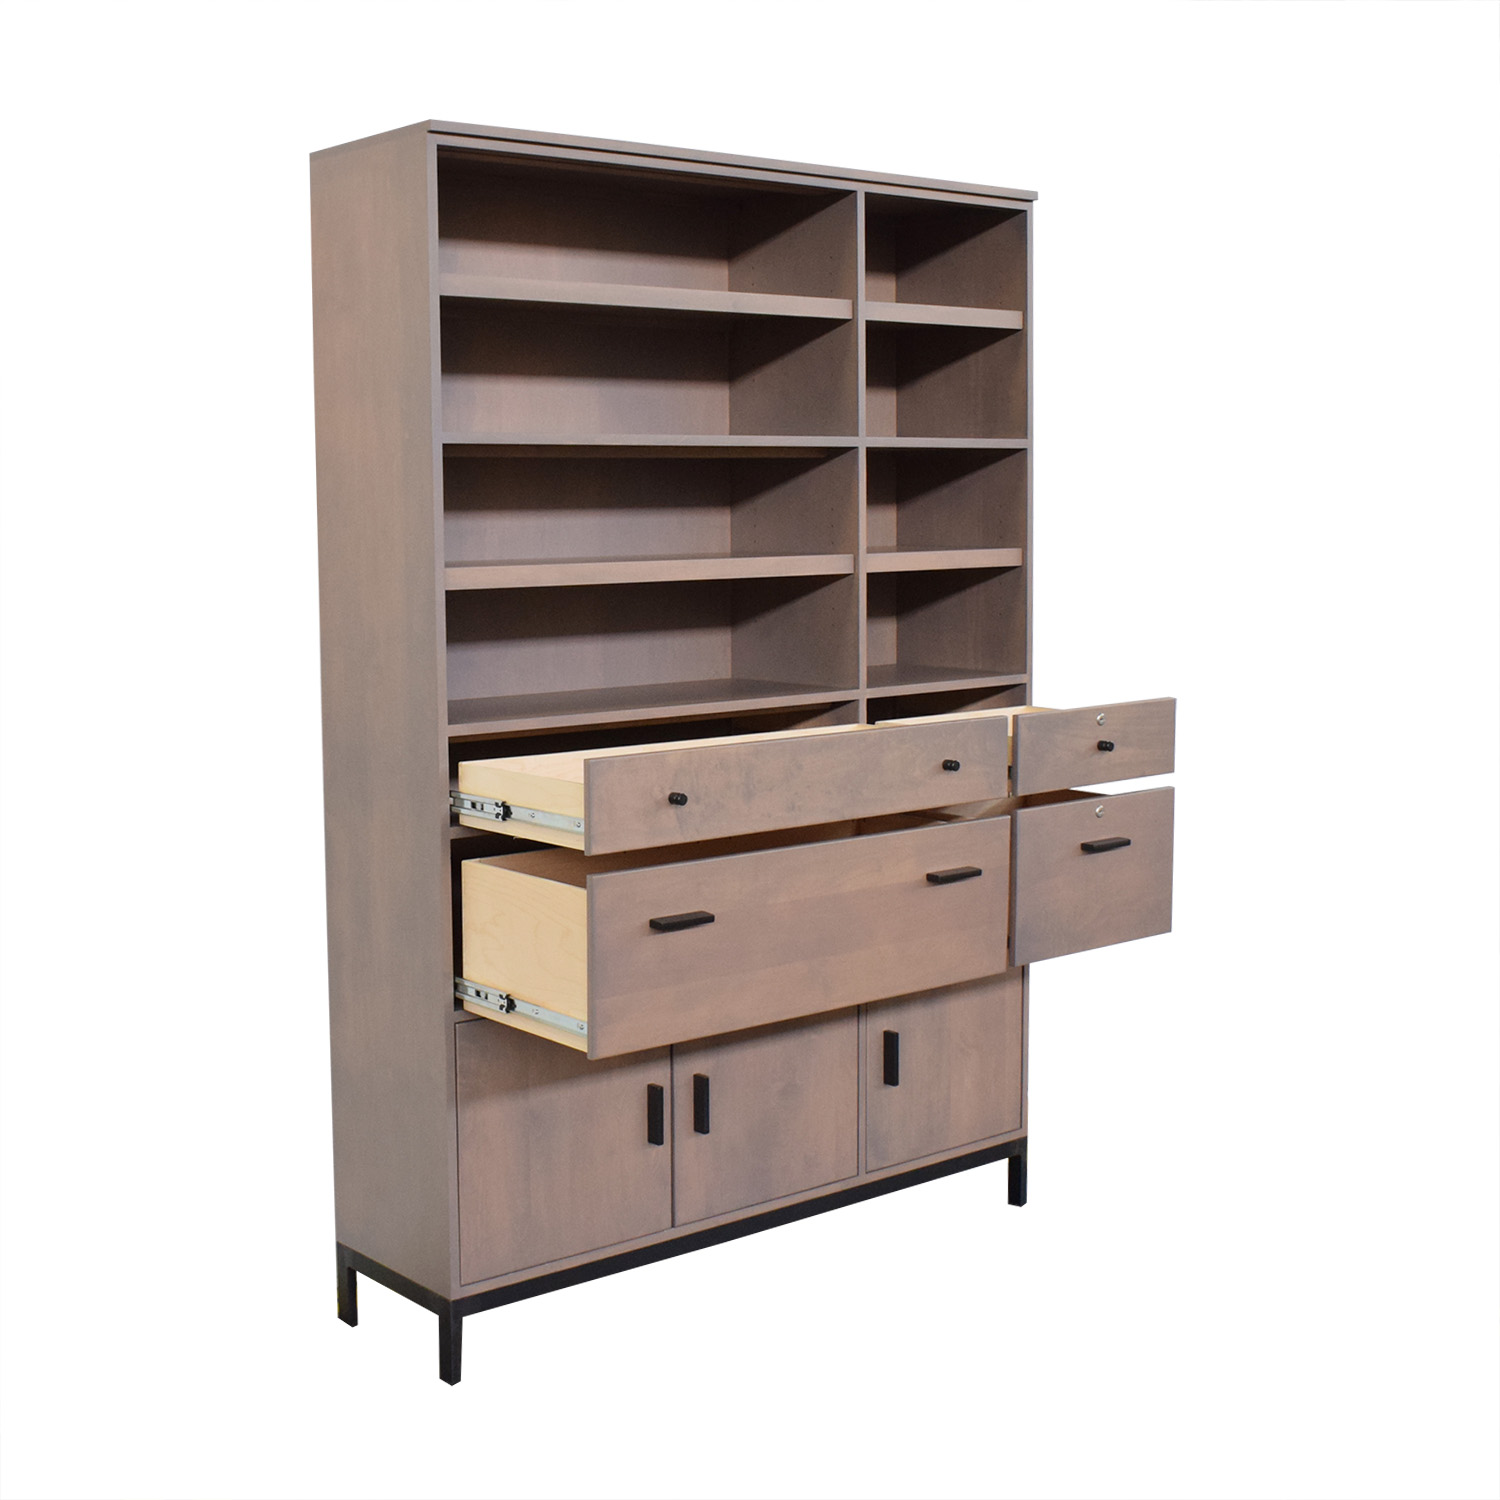 Room & Board Room & Board Storage Cabinet Bookcase coupon